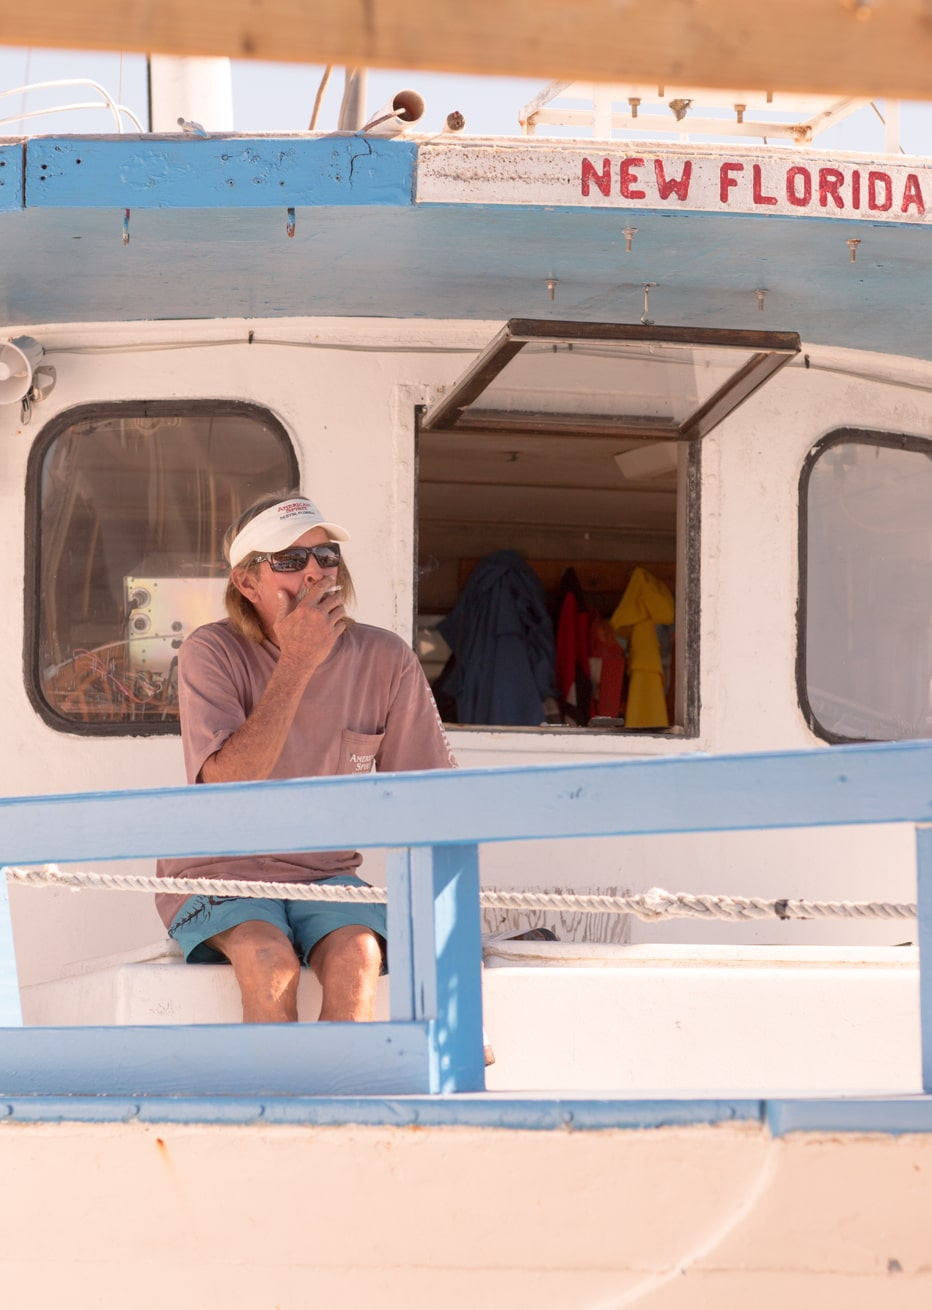 Fisherman taking a smoke break on the New Florida Girl boat